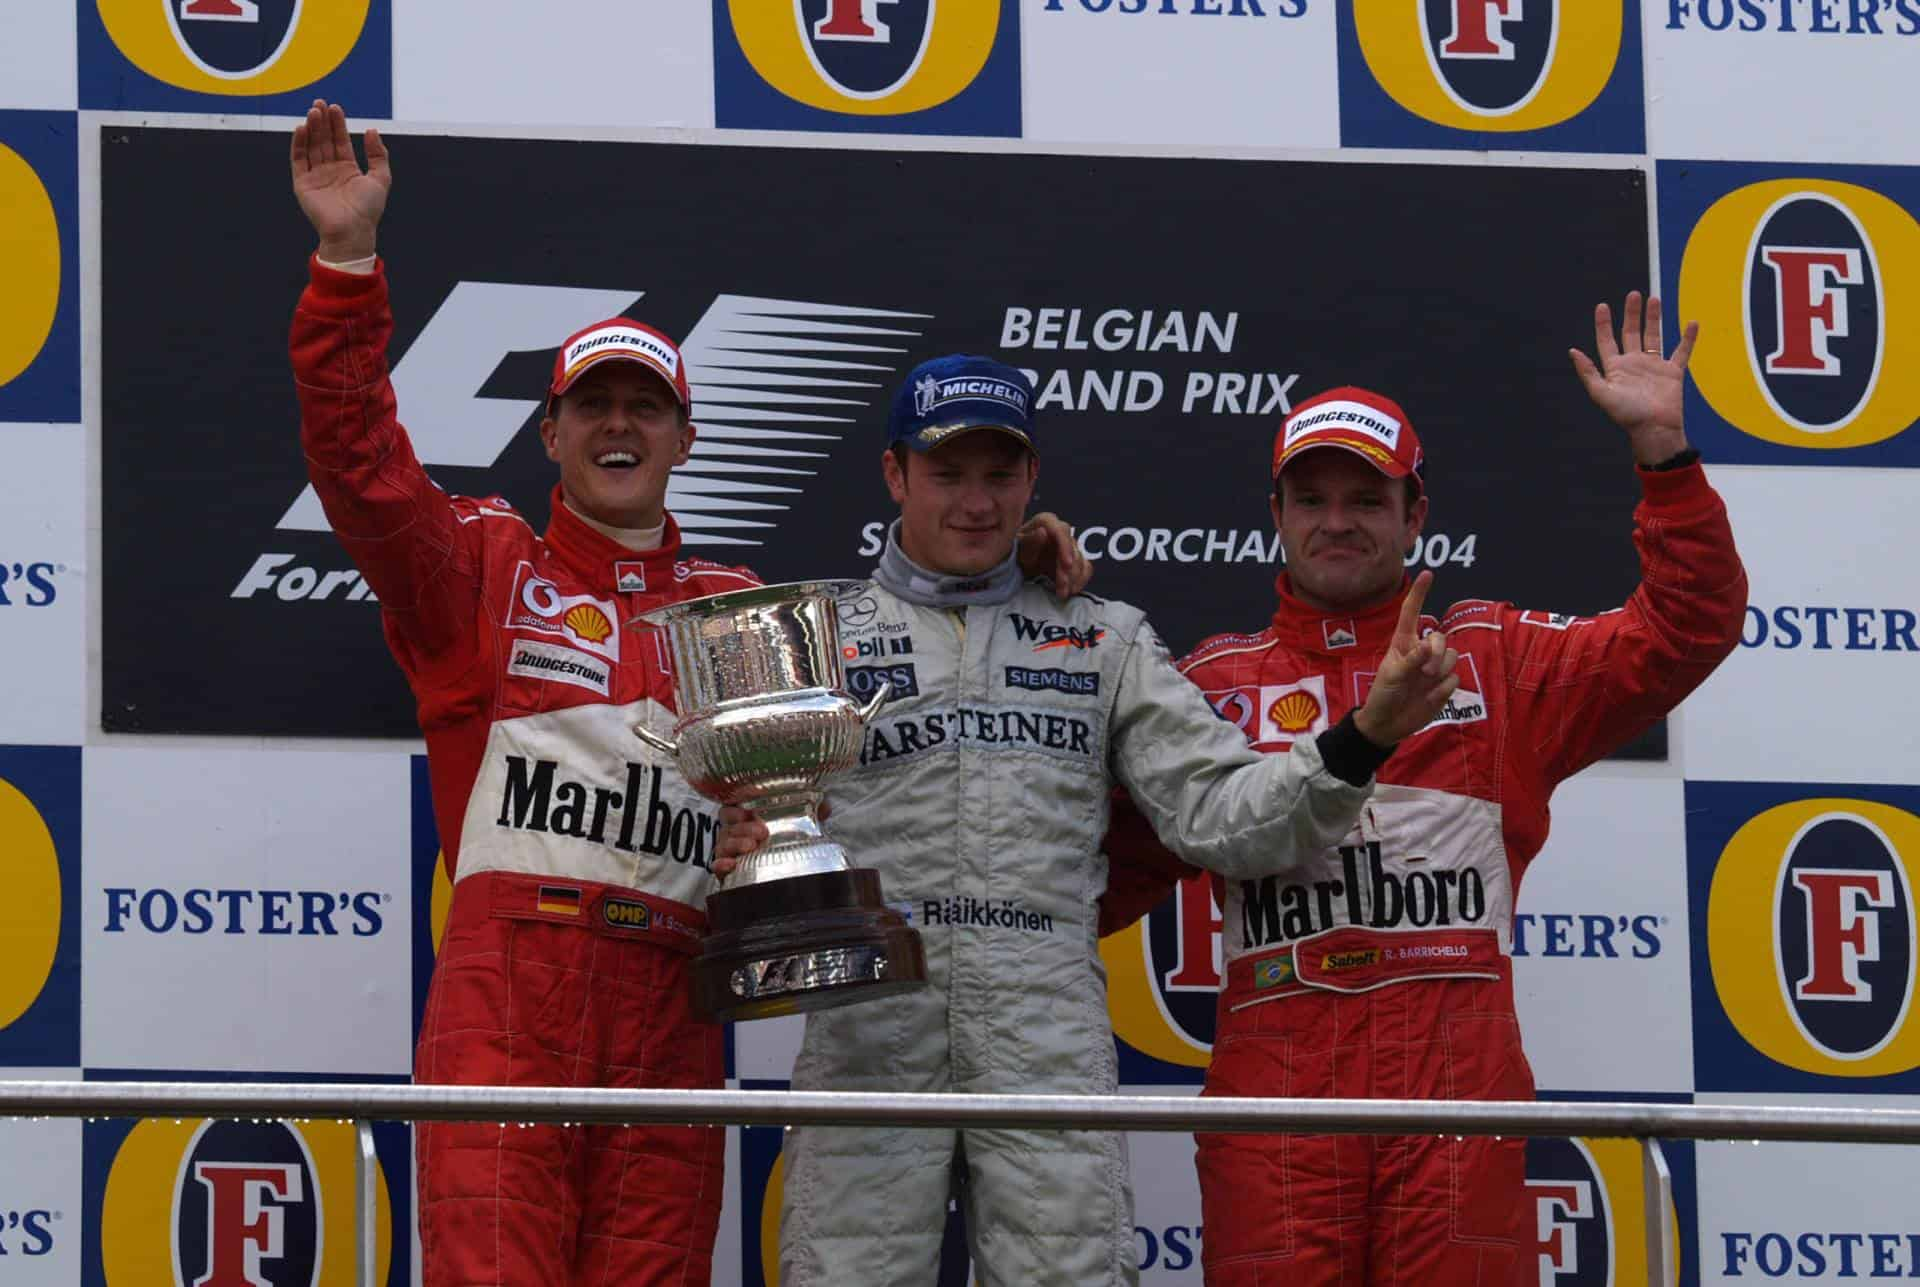 Belgian-GP-F1-2004-podium-Raikkonen-Schumacher-Barrichello-Photo-Ferrari